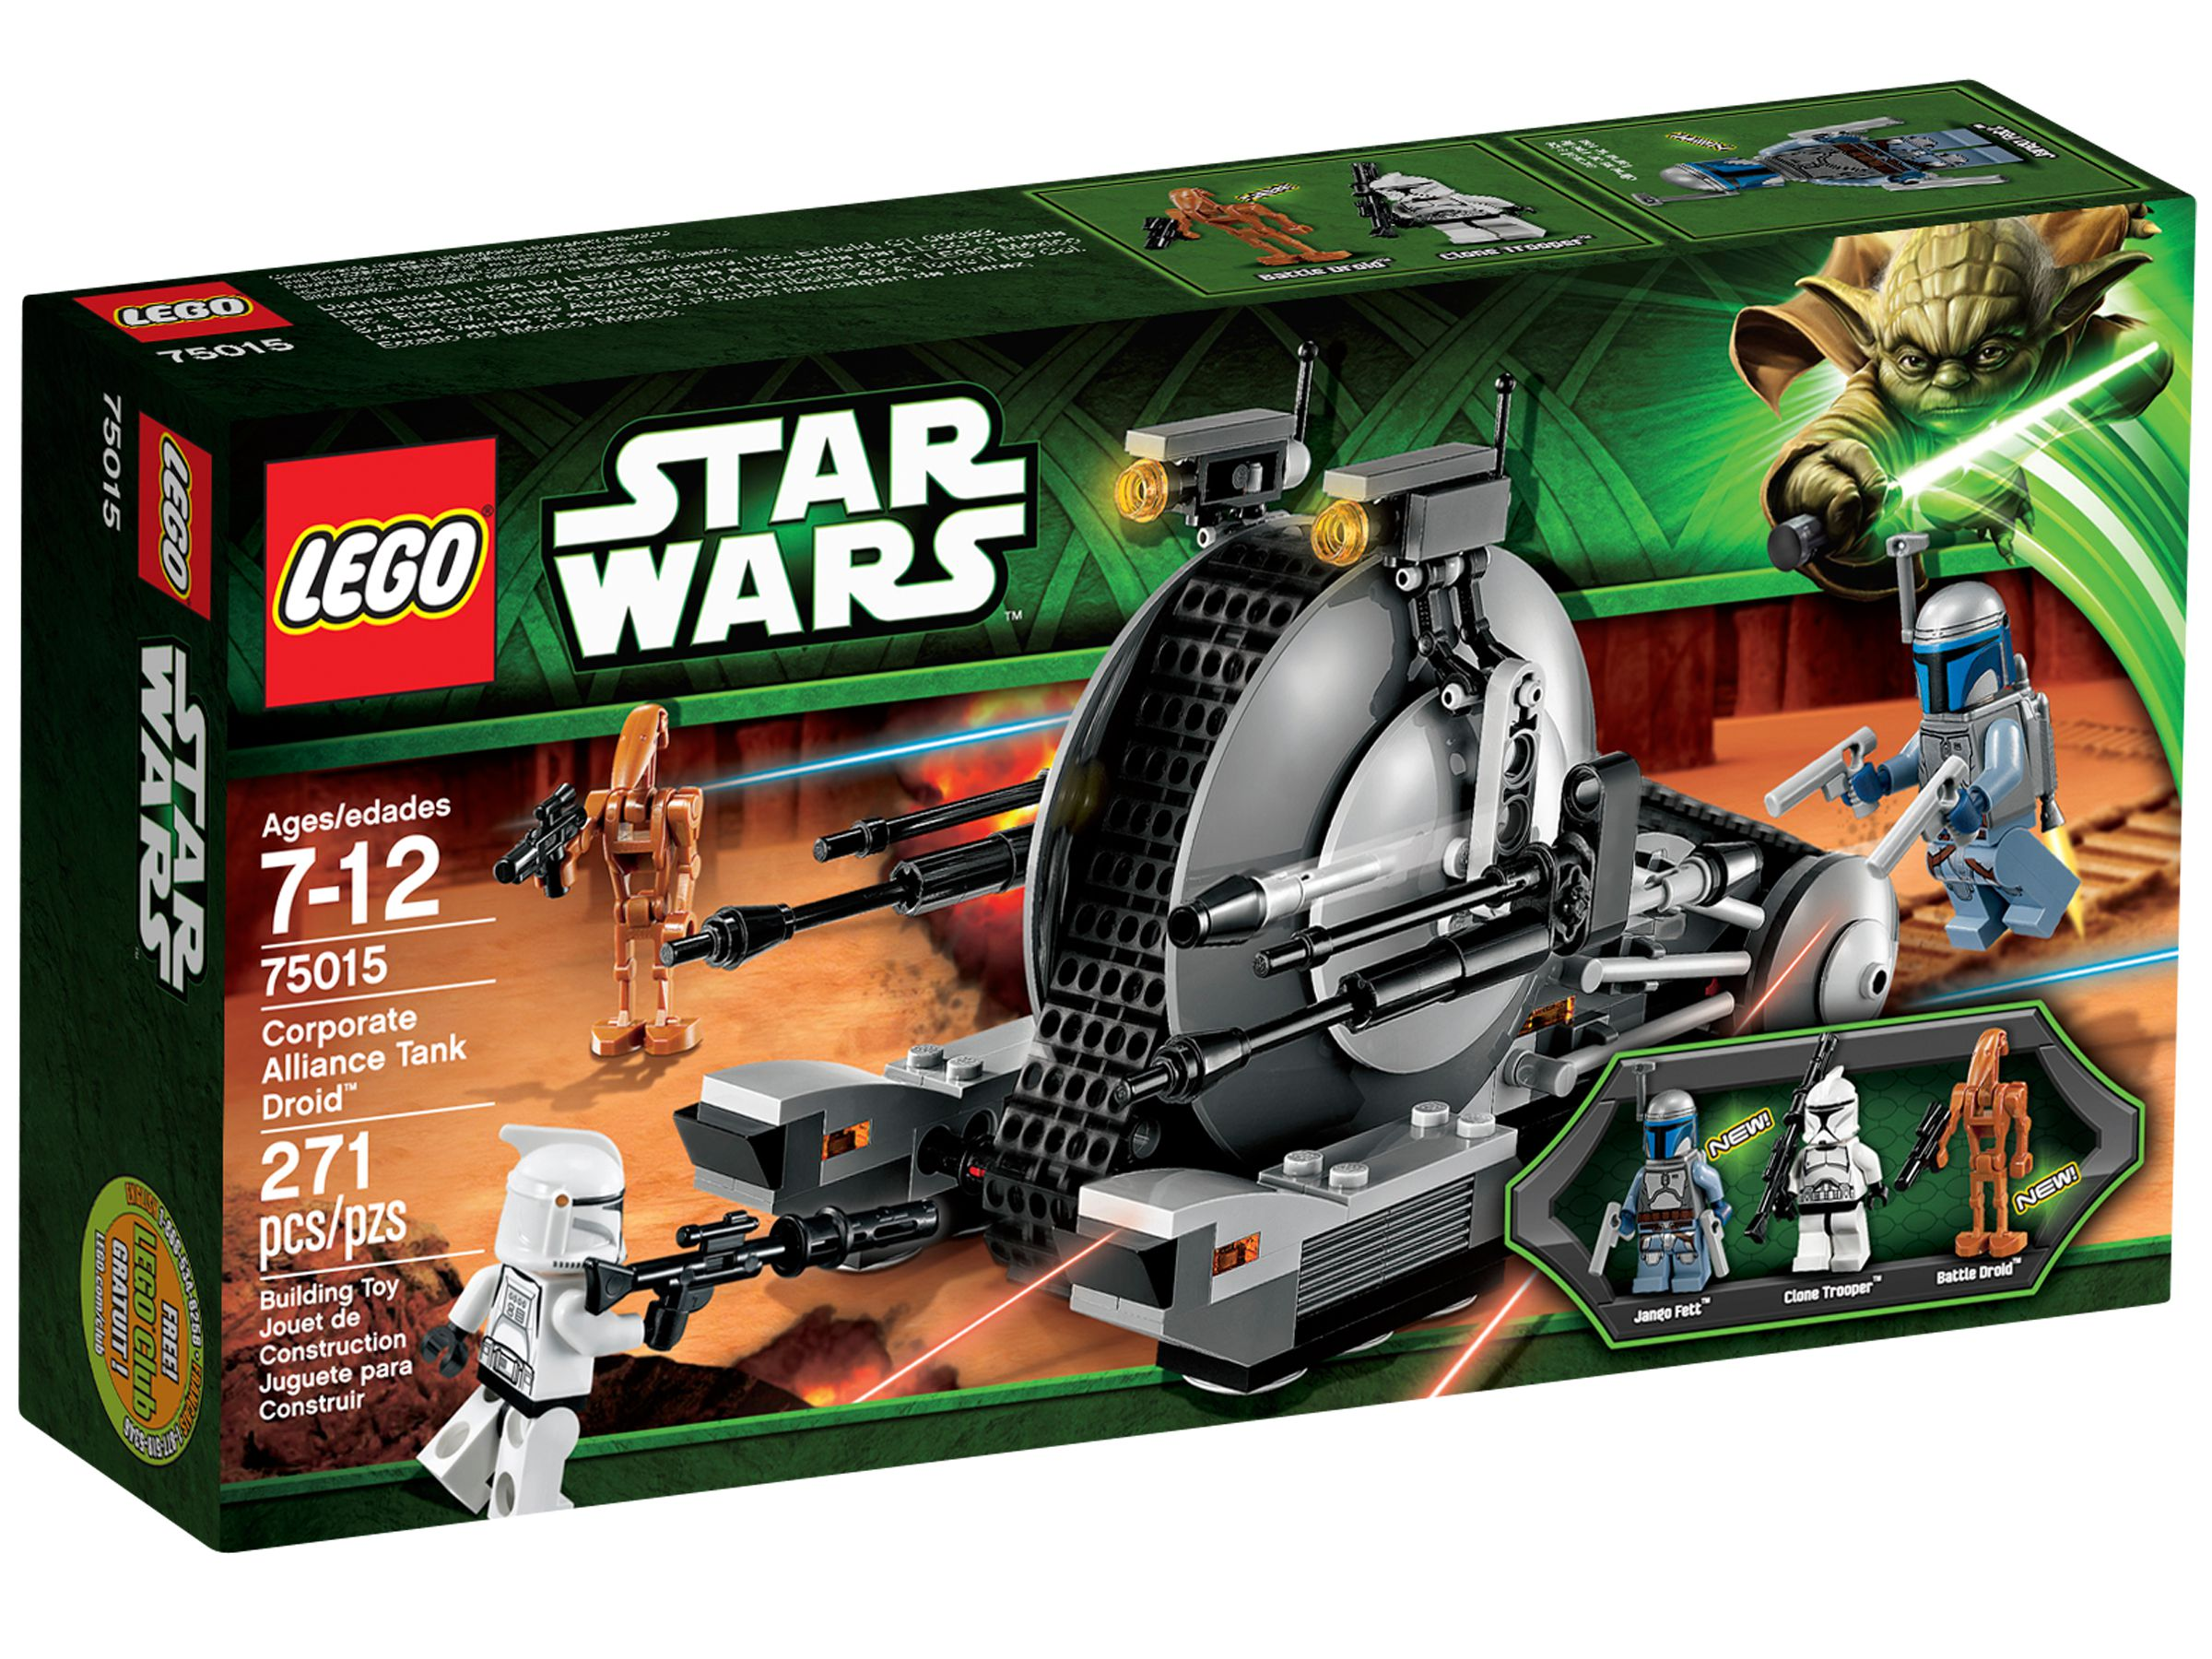 LEGO Star Wars 75015 Corporate Alliance Tank Droid™ LEGO_75015_alt1.jpg